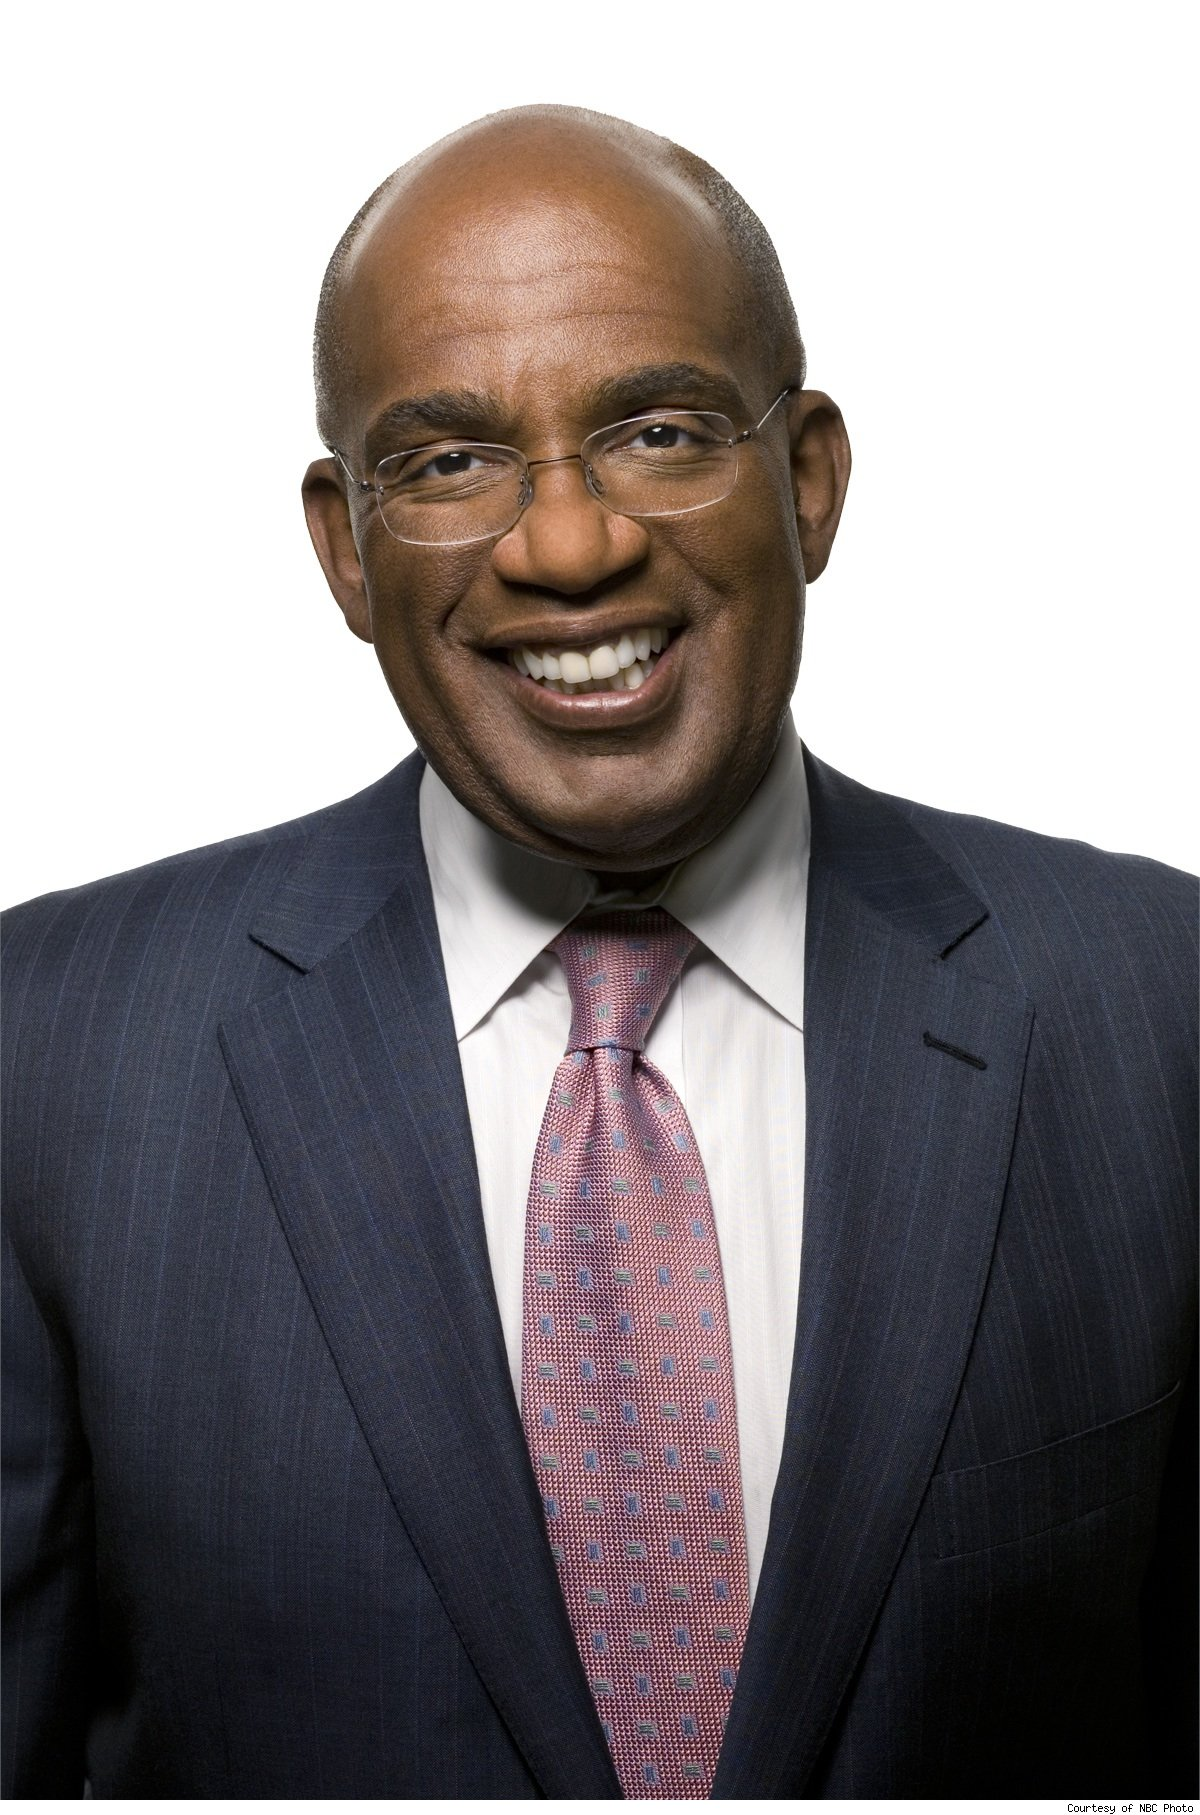 http://www.blogcdn.com/www.bvonbooks.com/media/2009/11/al_roker_high_resolution-1258661836.jpg